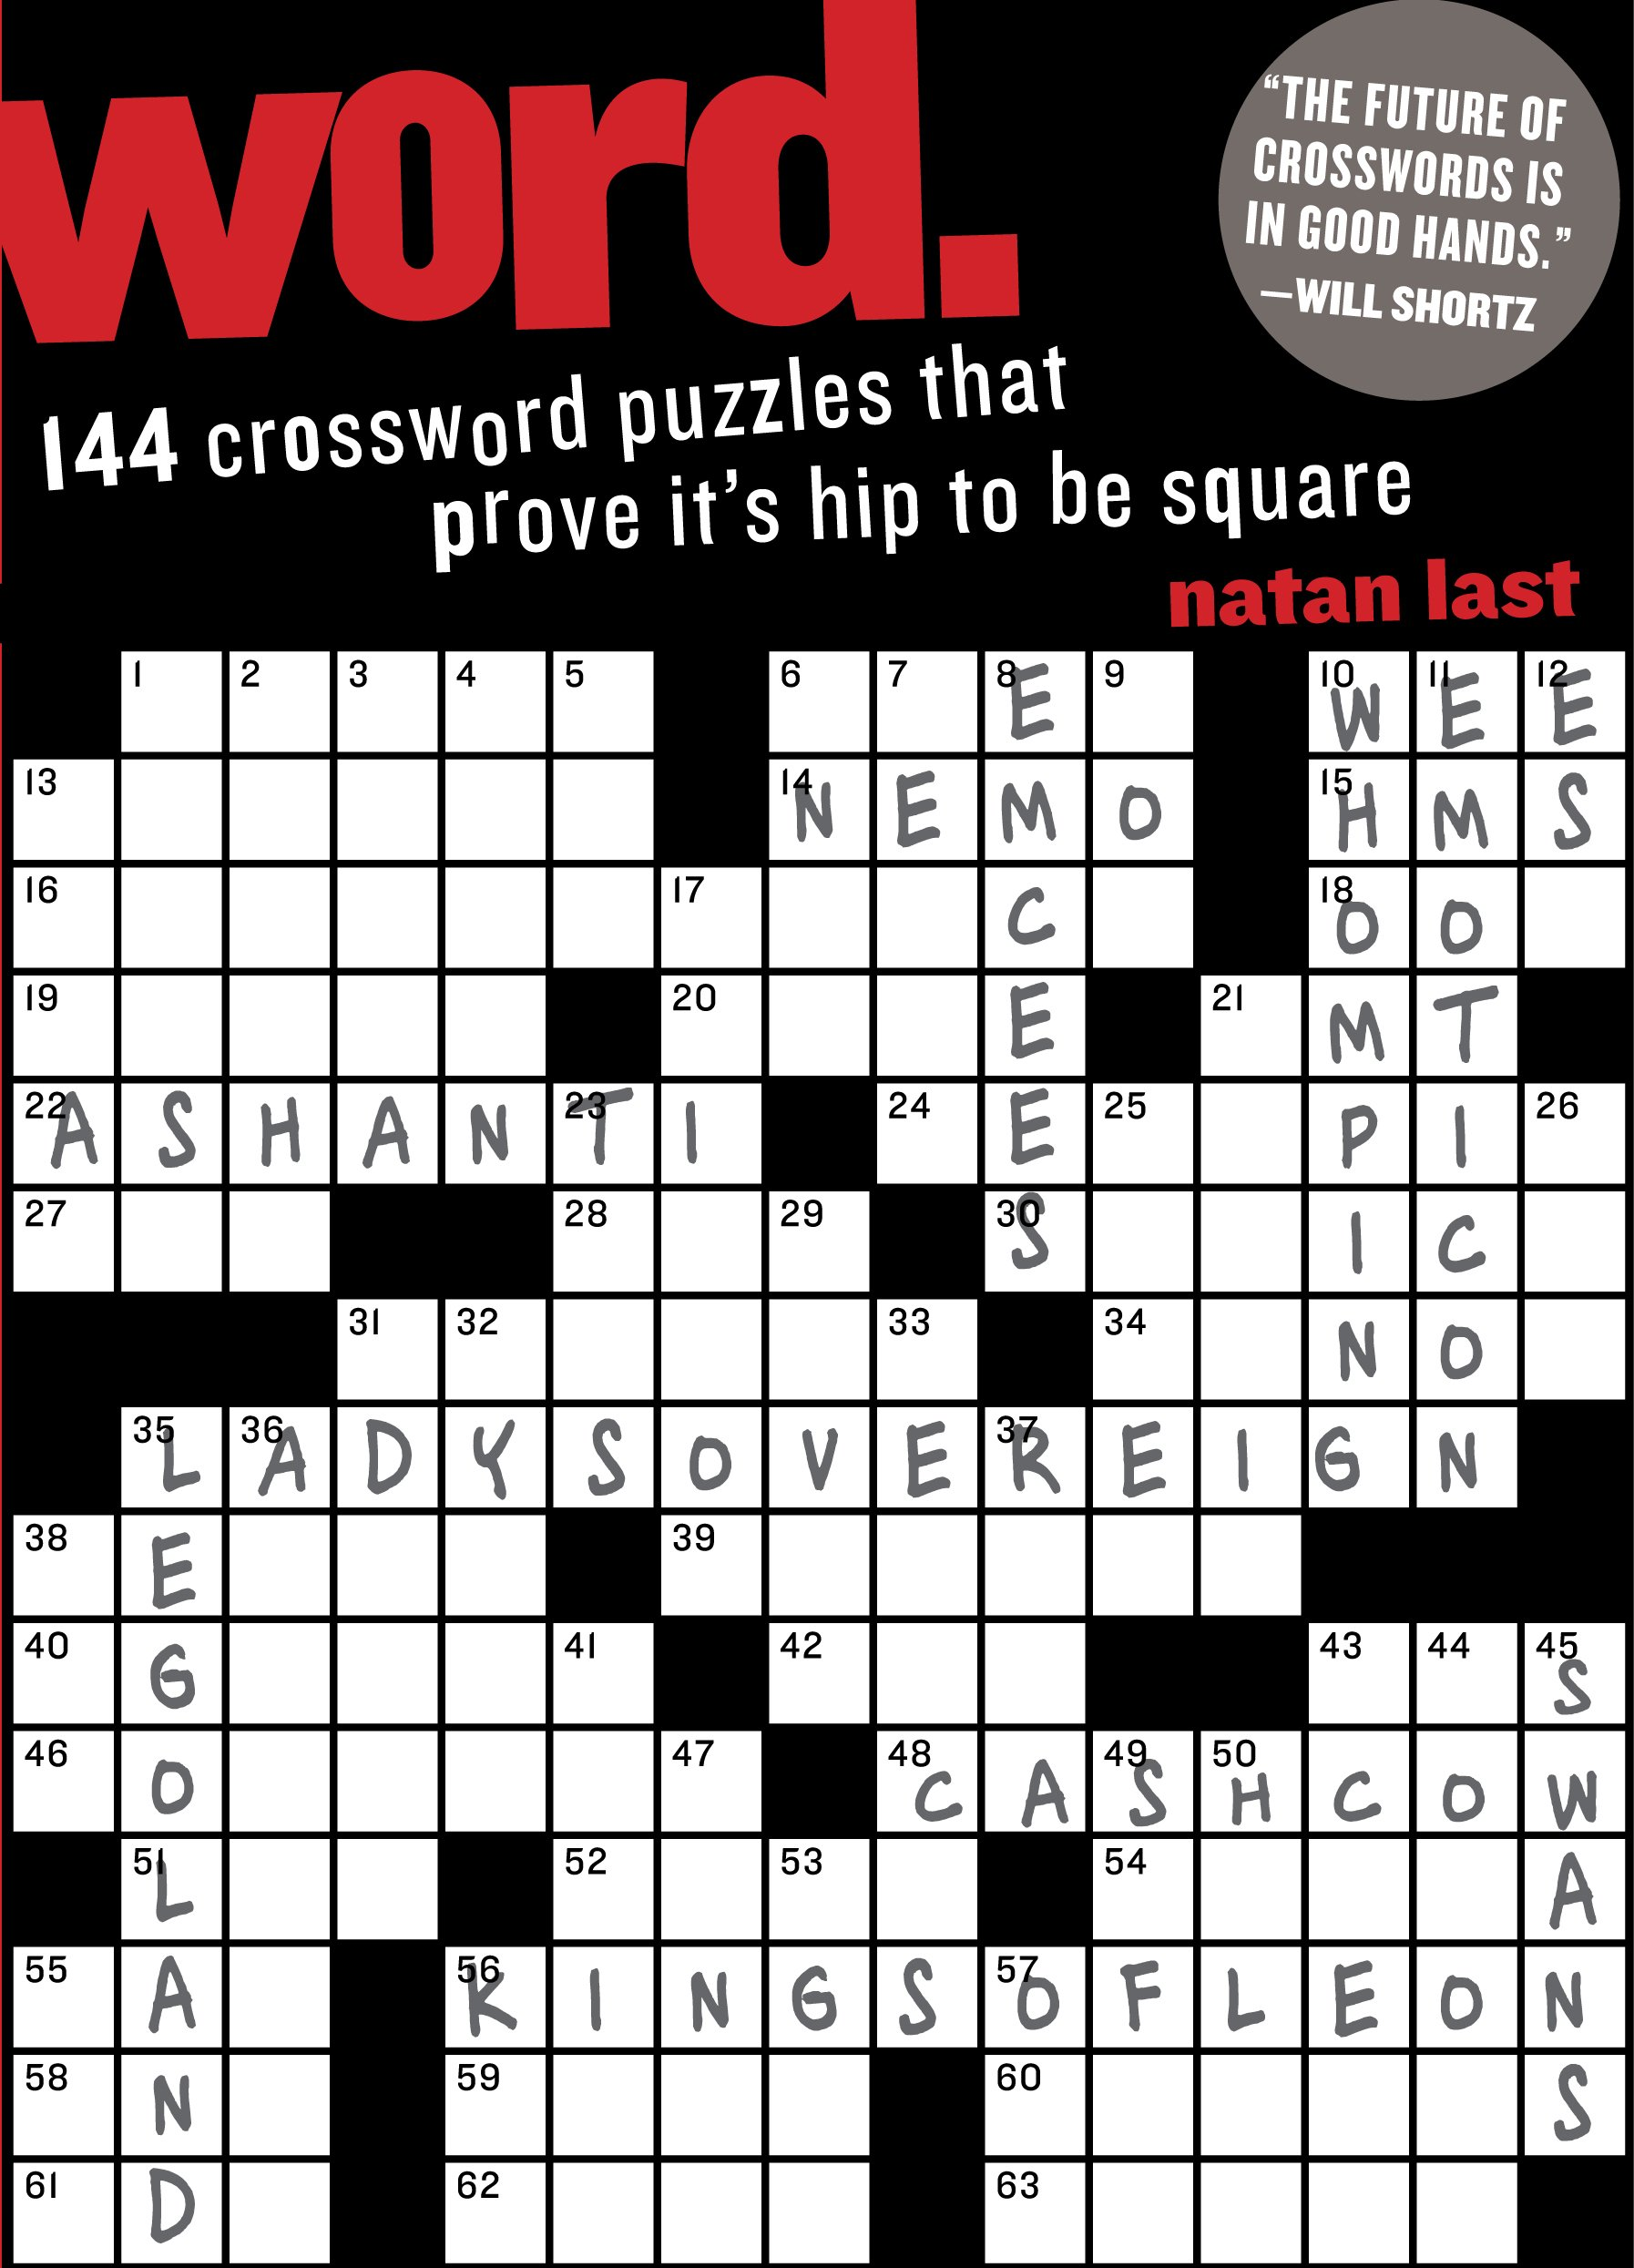 144 Crossword Puzzles That Prove Its Hip To Be Square Natan Last Will Shortz 9780761167556 Amazon Books